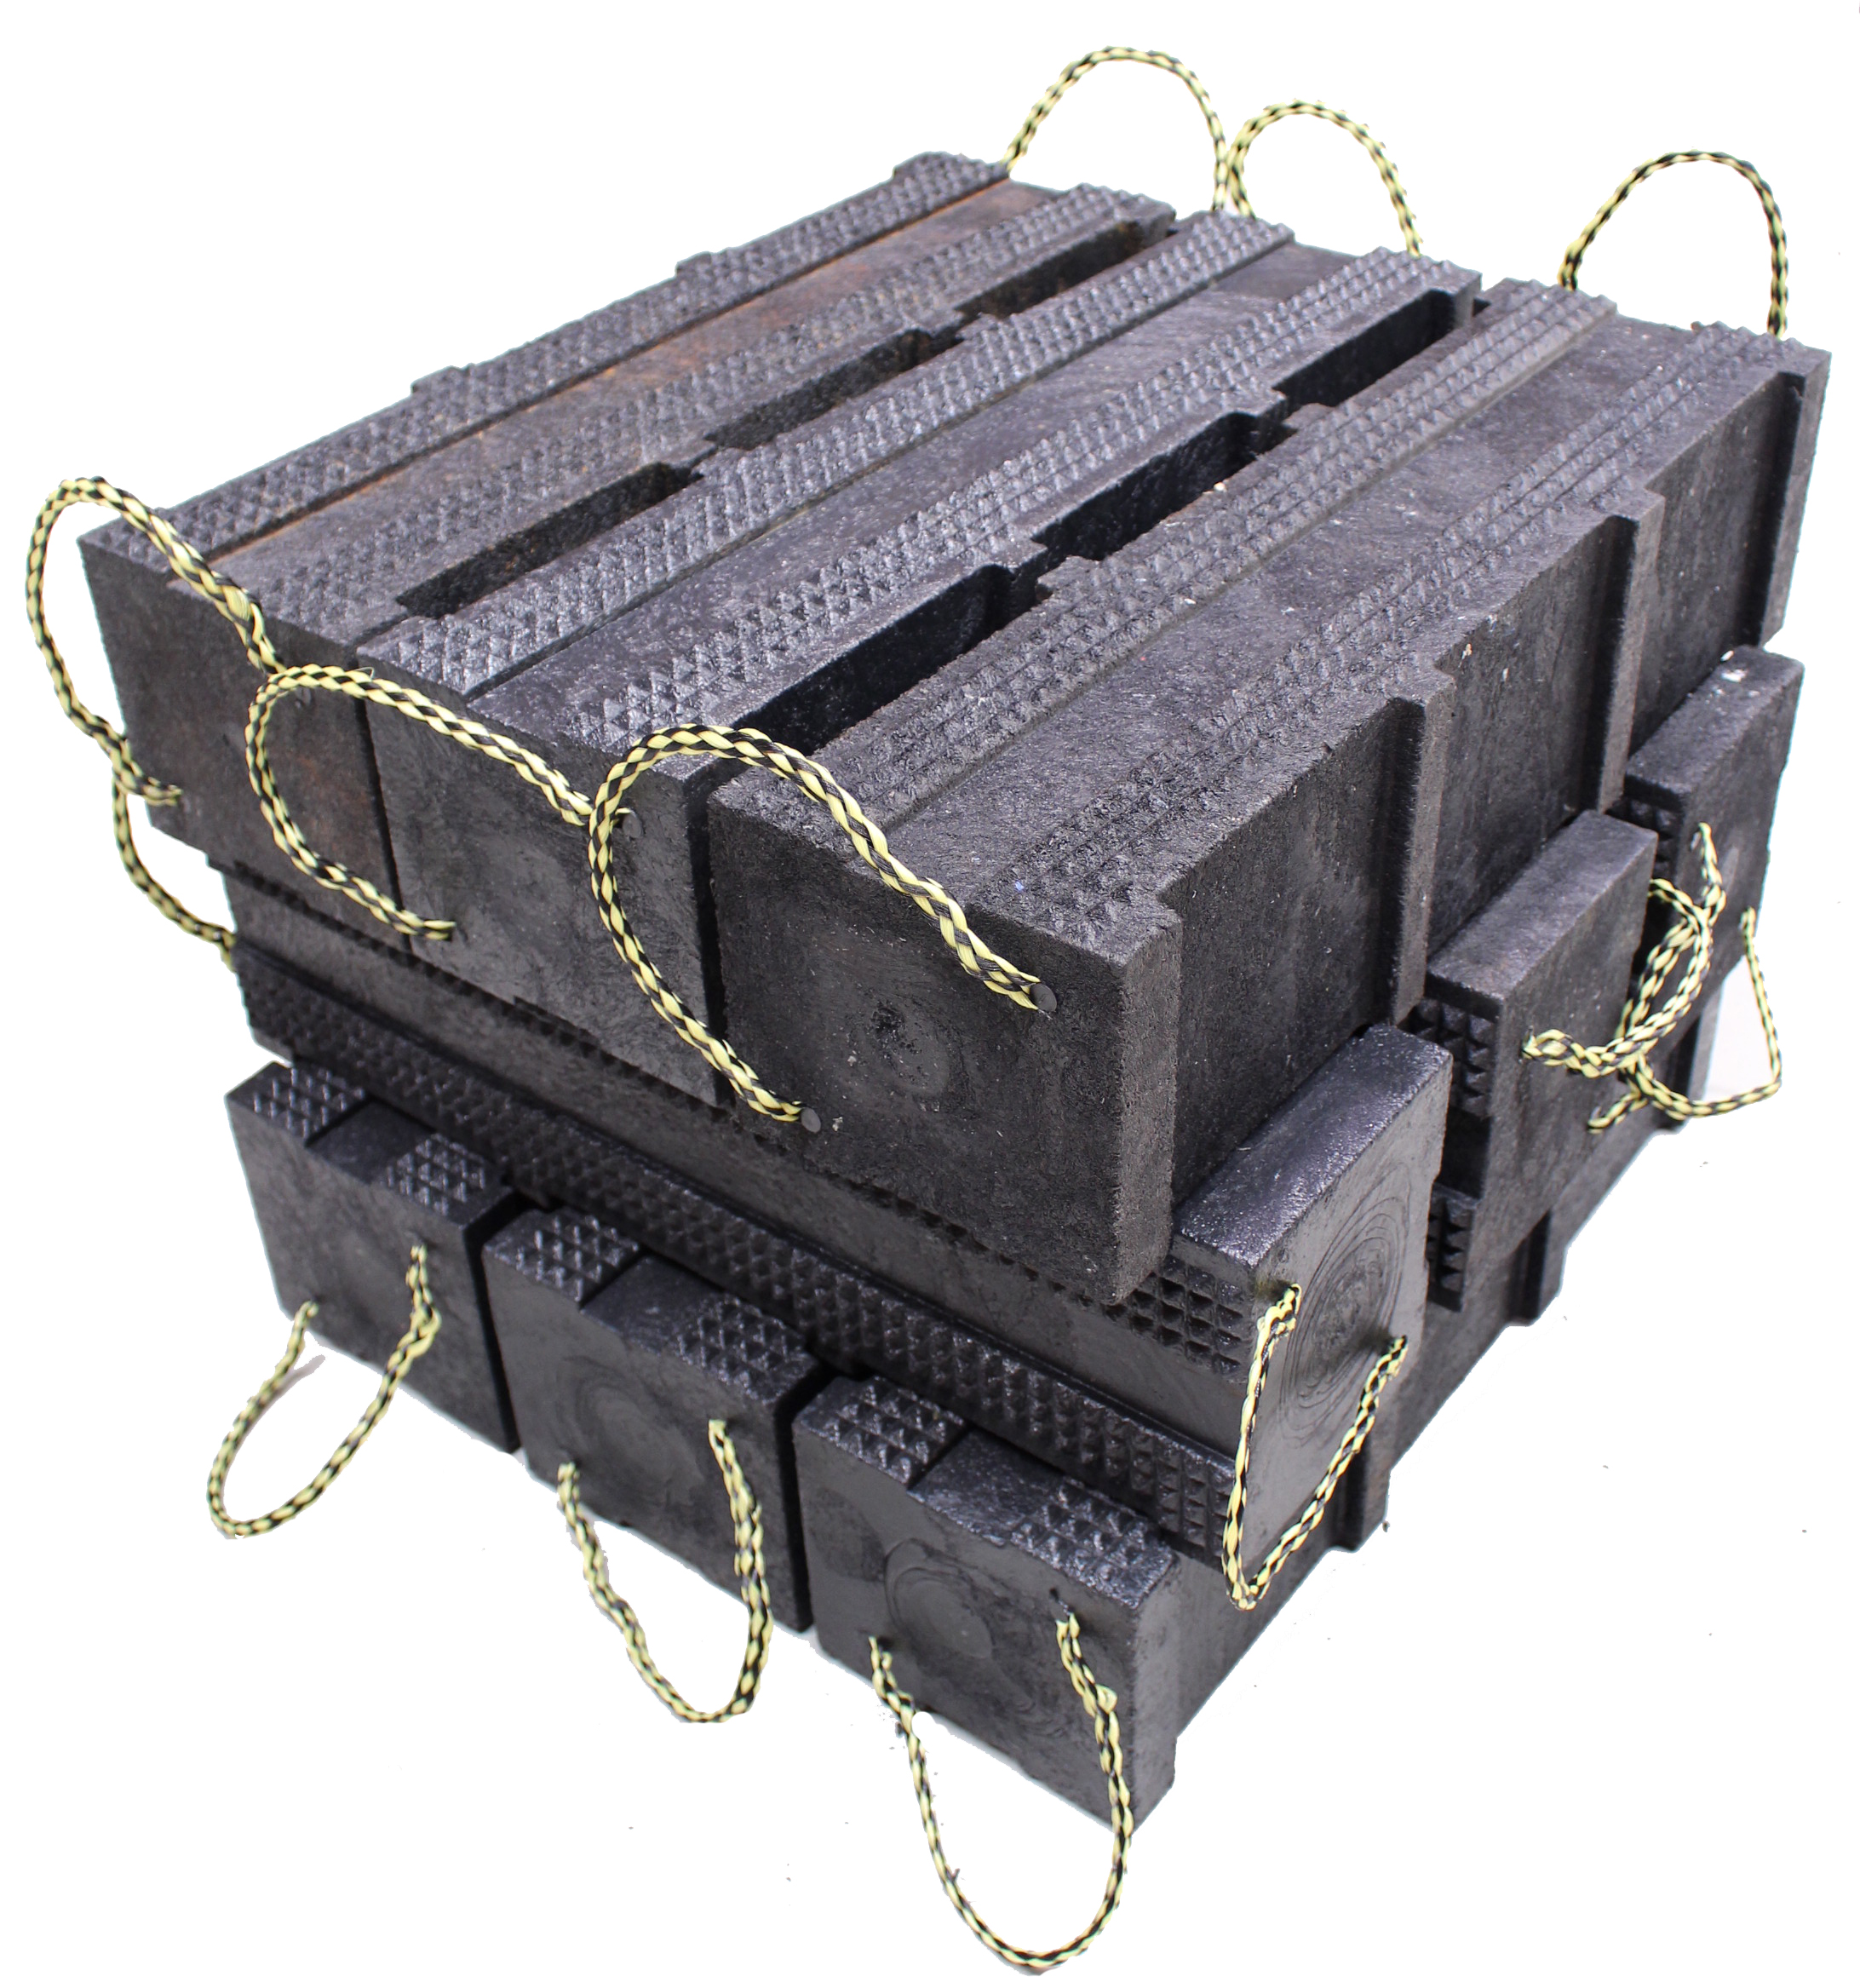 Cribbing and jacking blocks can take heavy loads